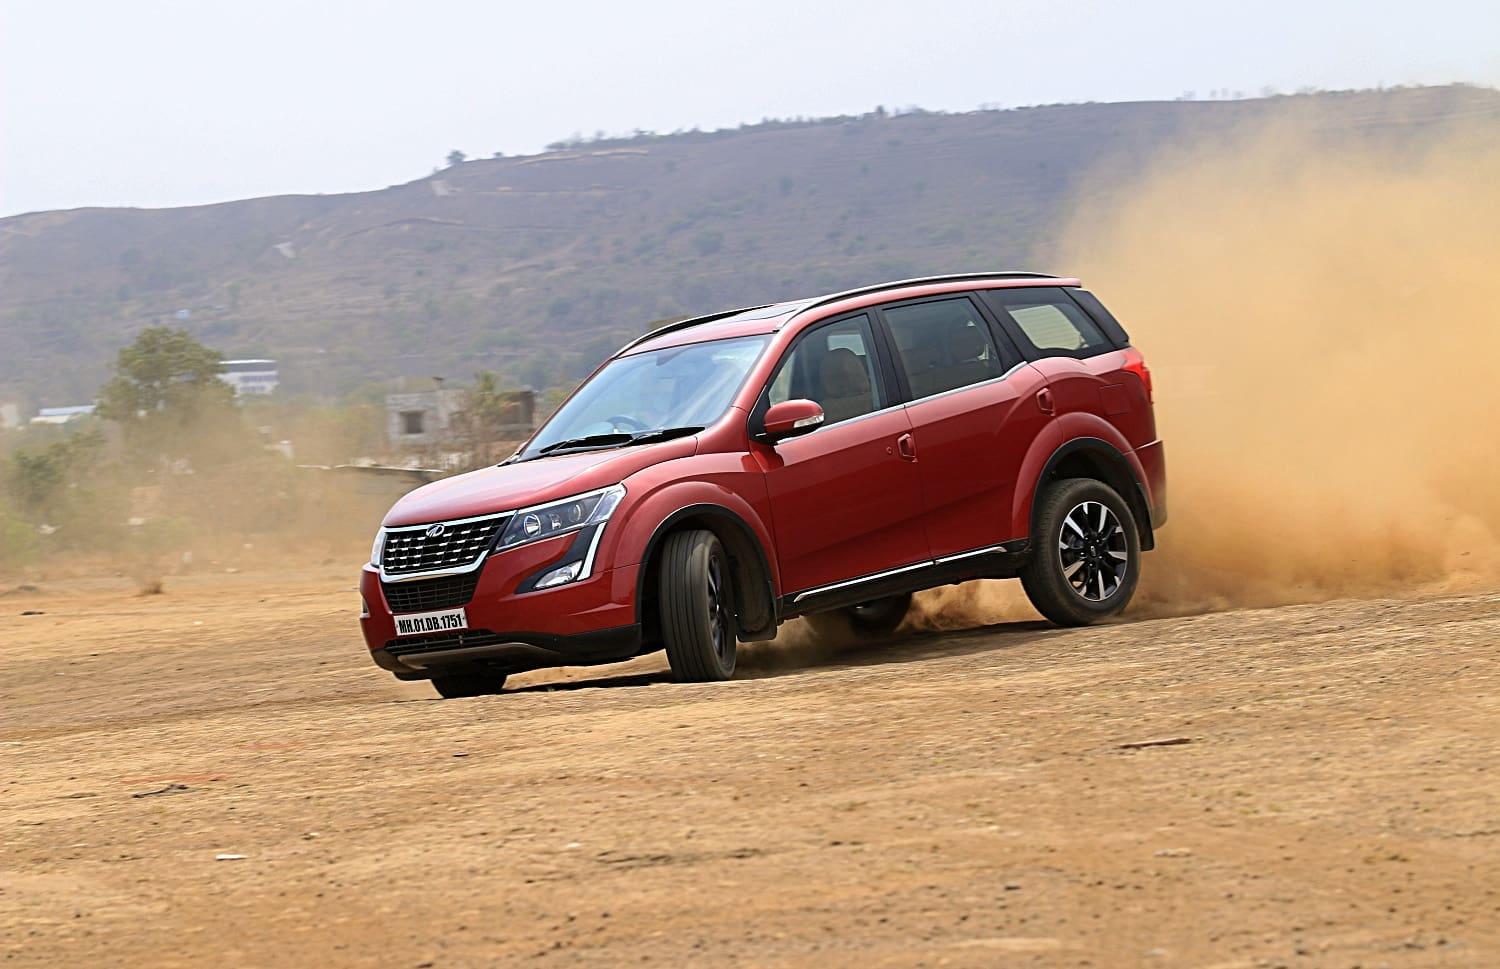 5 Mahindra XUV500 Road Test Reviews from Experts | CarDekho.com